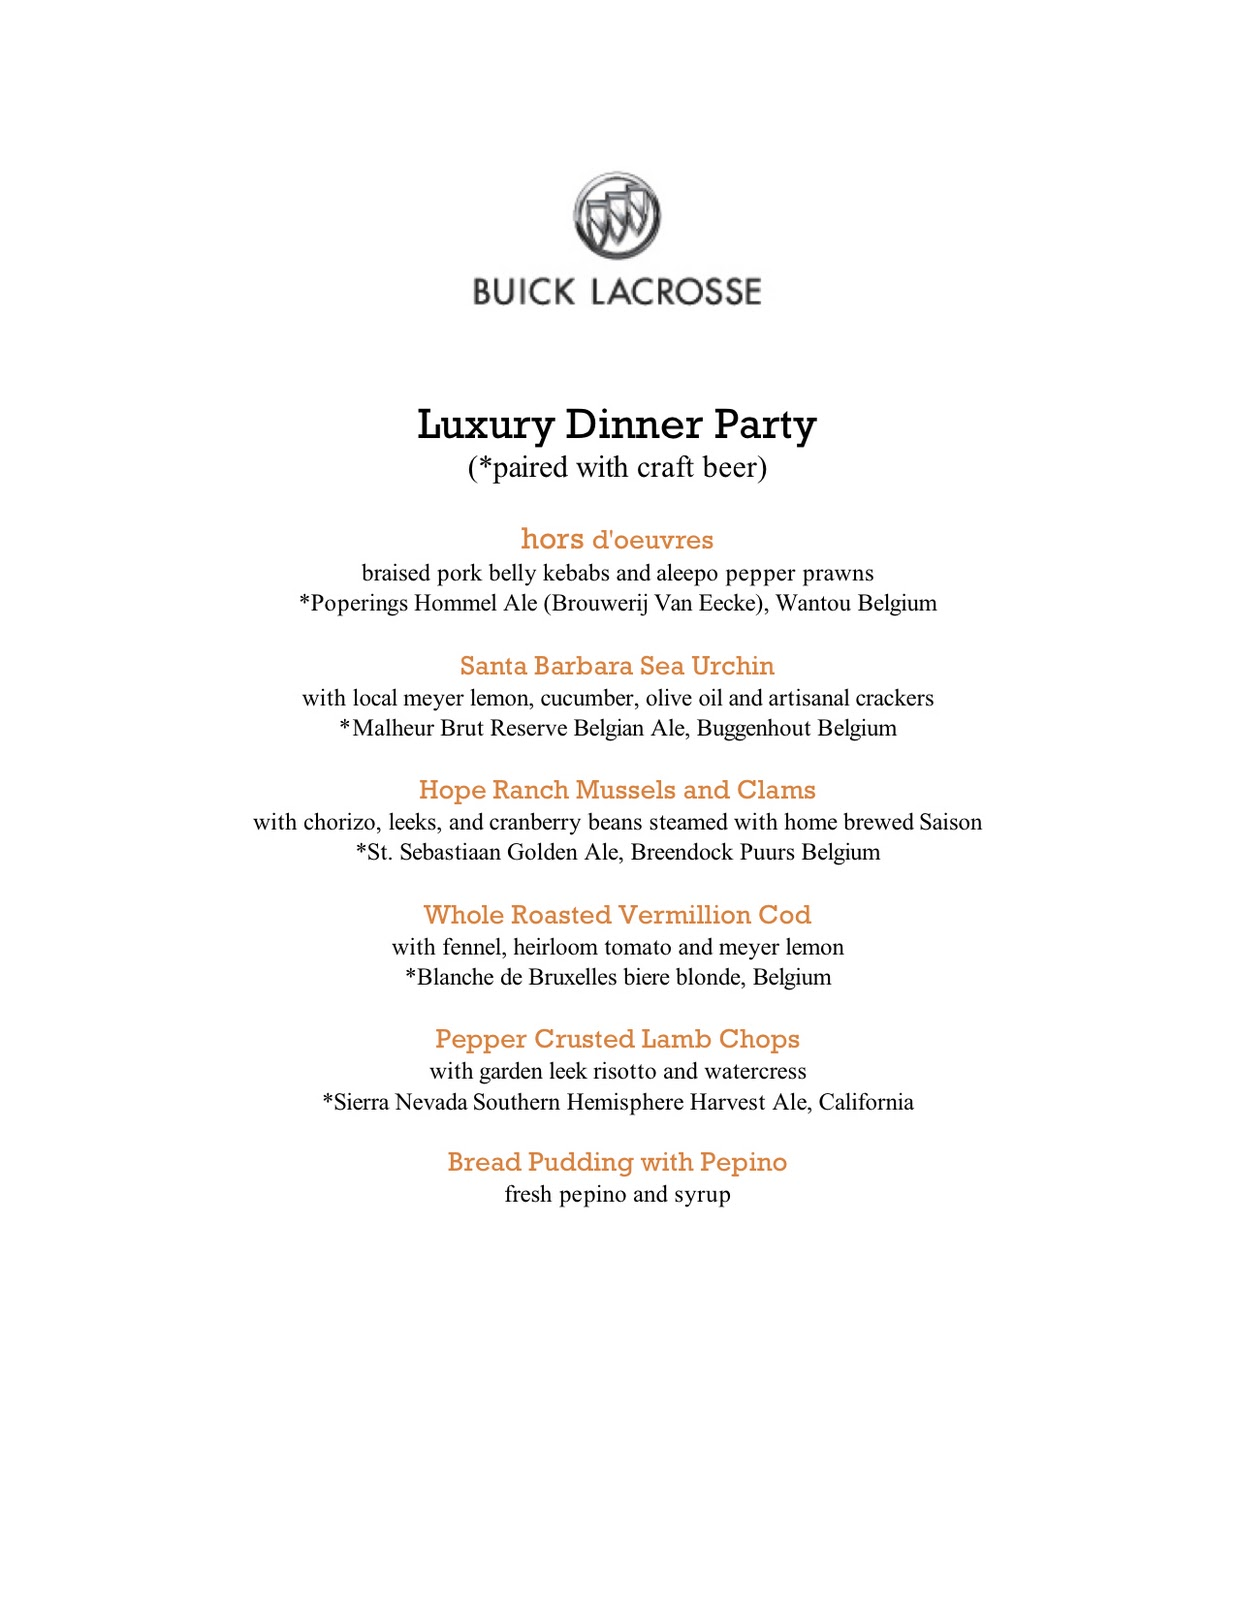 A Luxury Dinner Party, Paired With Beer